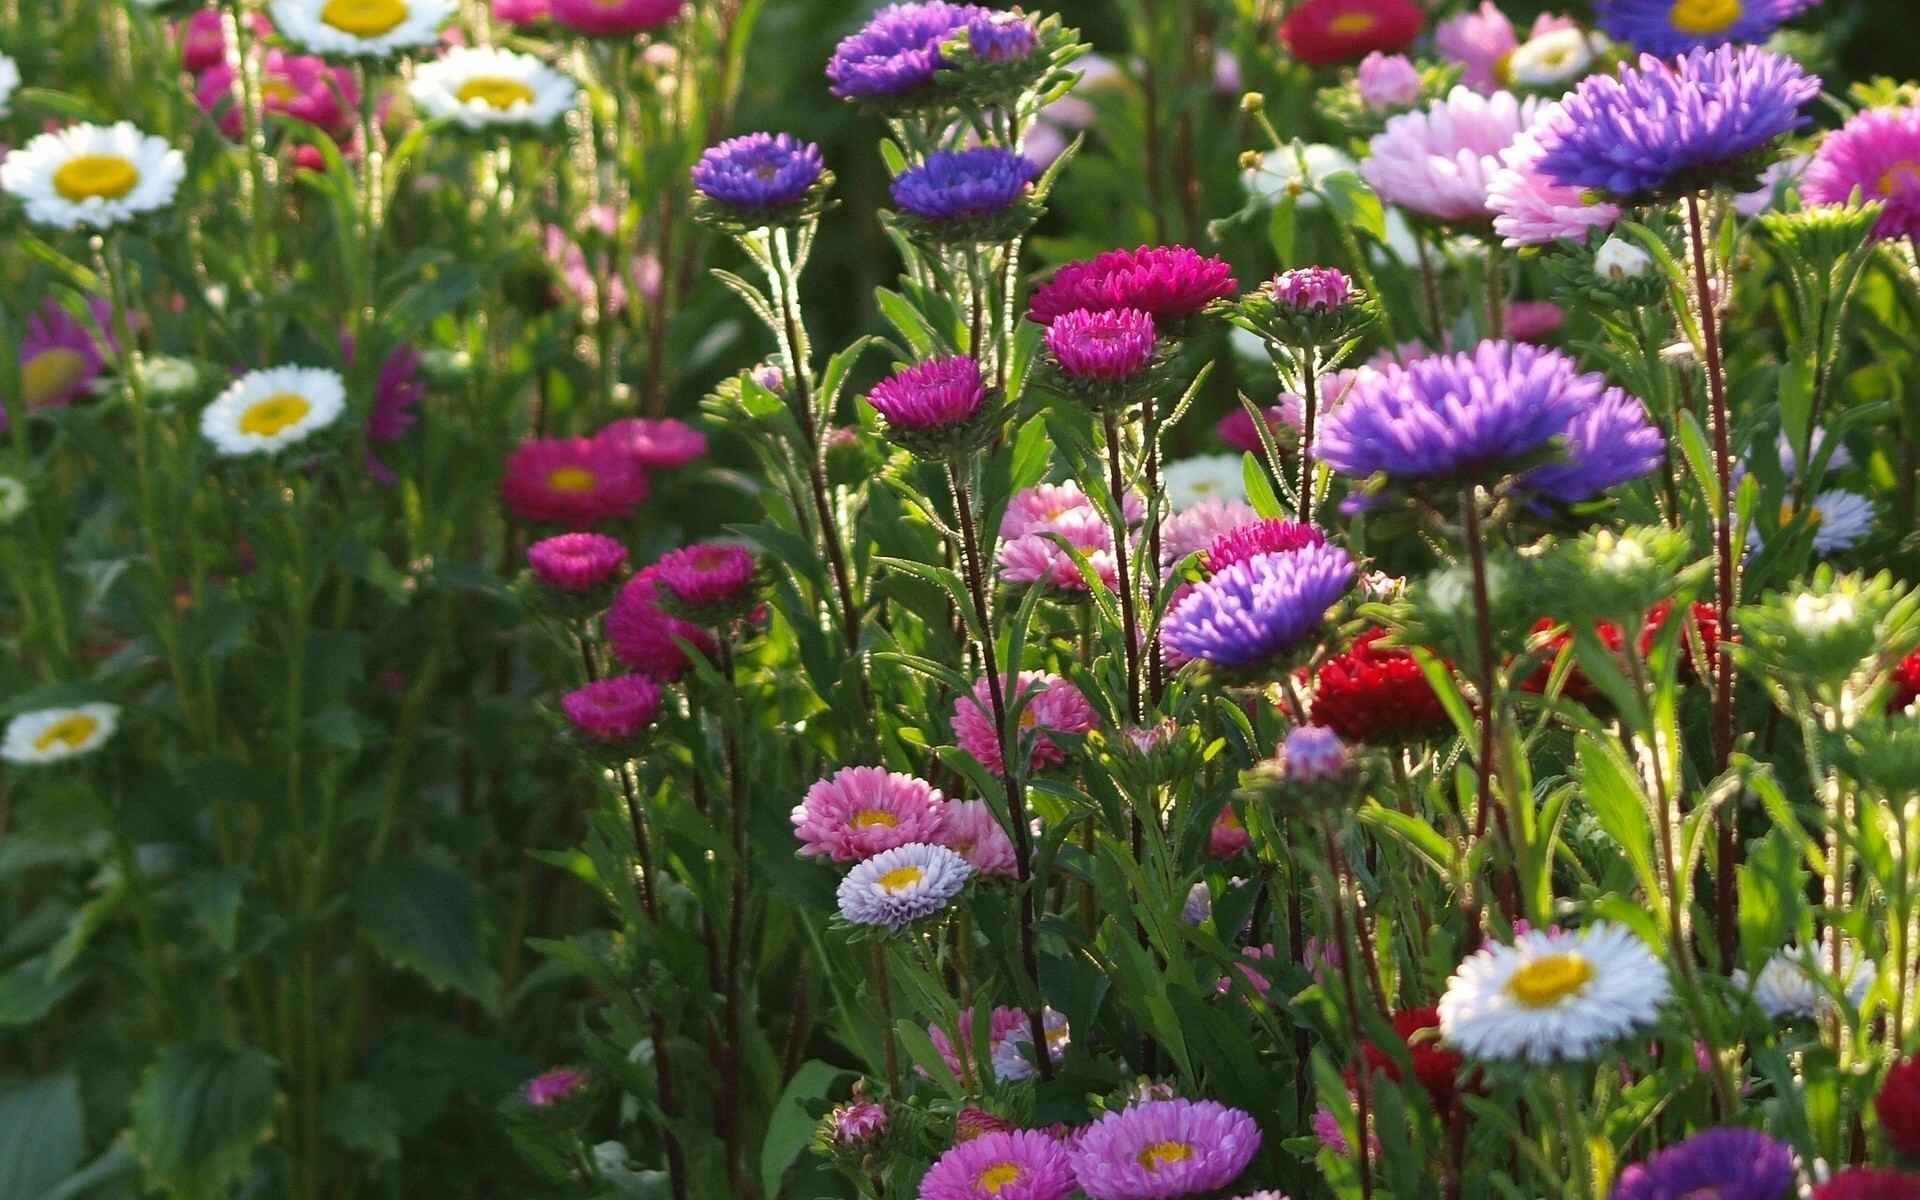 Asters & Daisies Spring Flowers